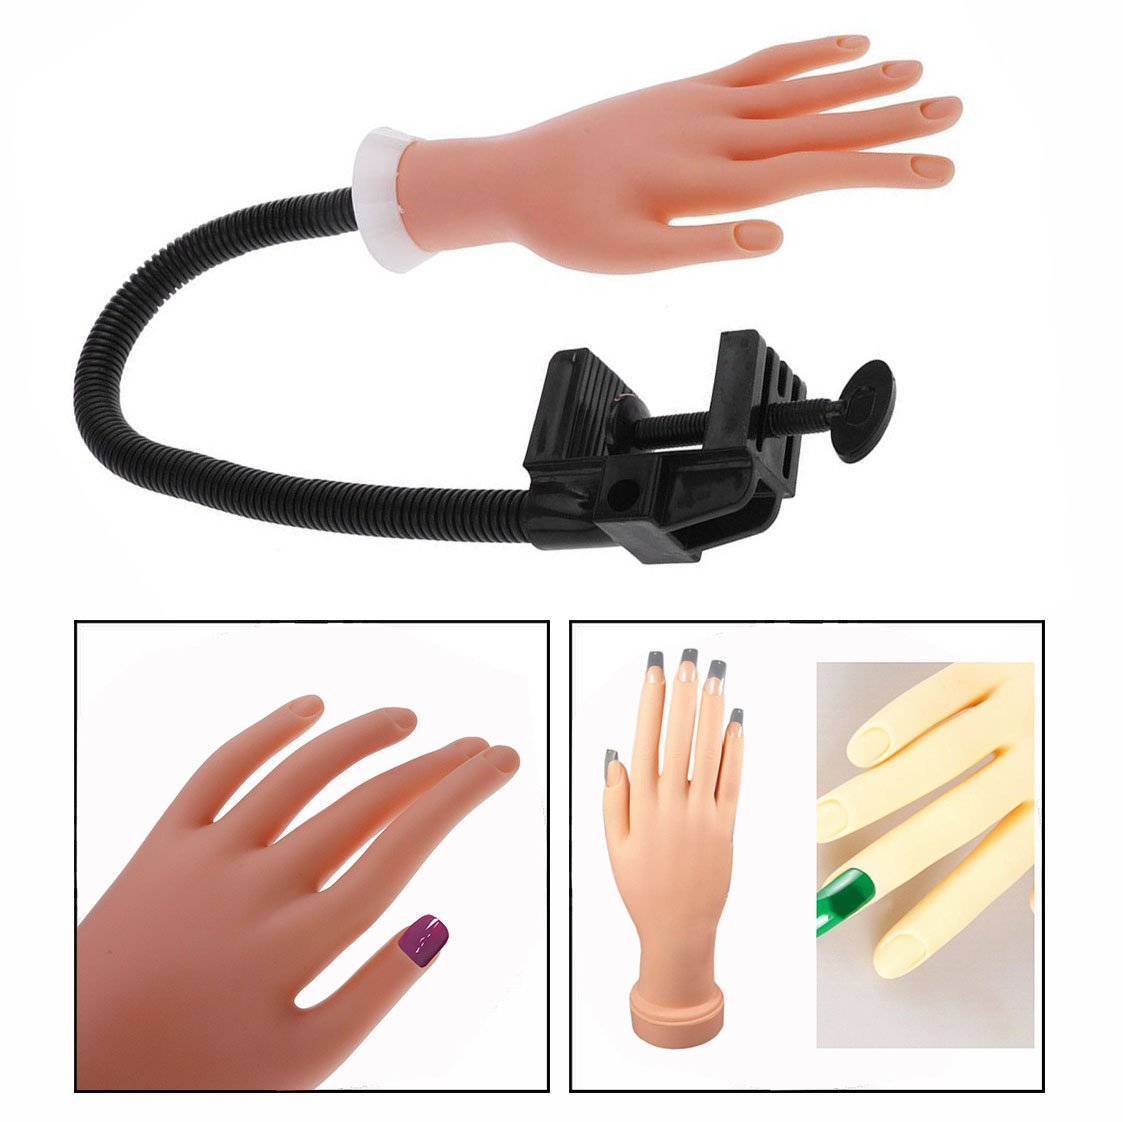 Cisixin Nail Hand With Bracket Flexible Nail Manicure Practice Soft Bendable Hand Mannequin Model For Nail Art Training Hand